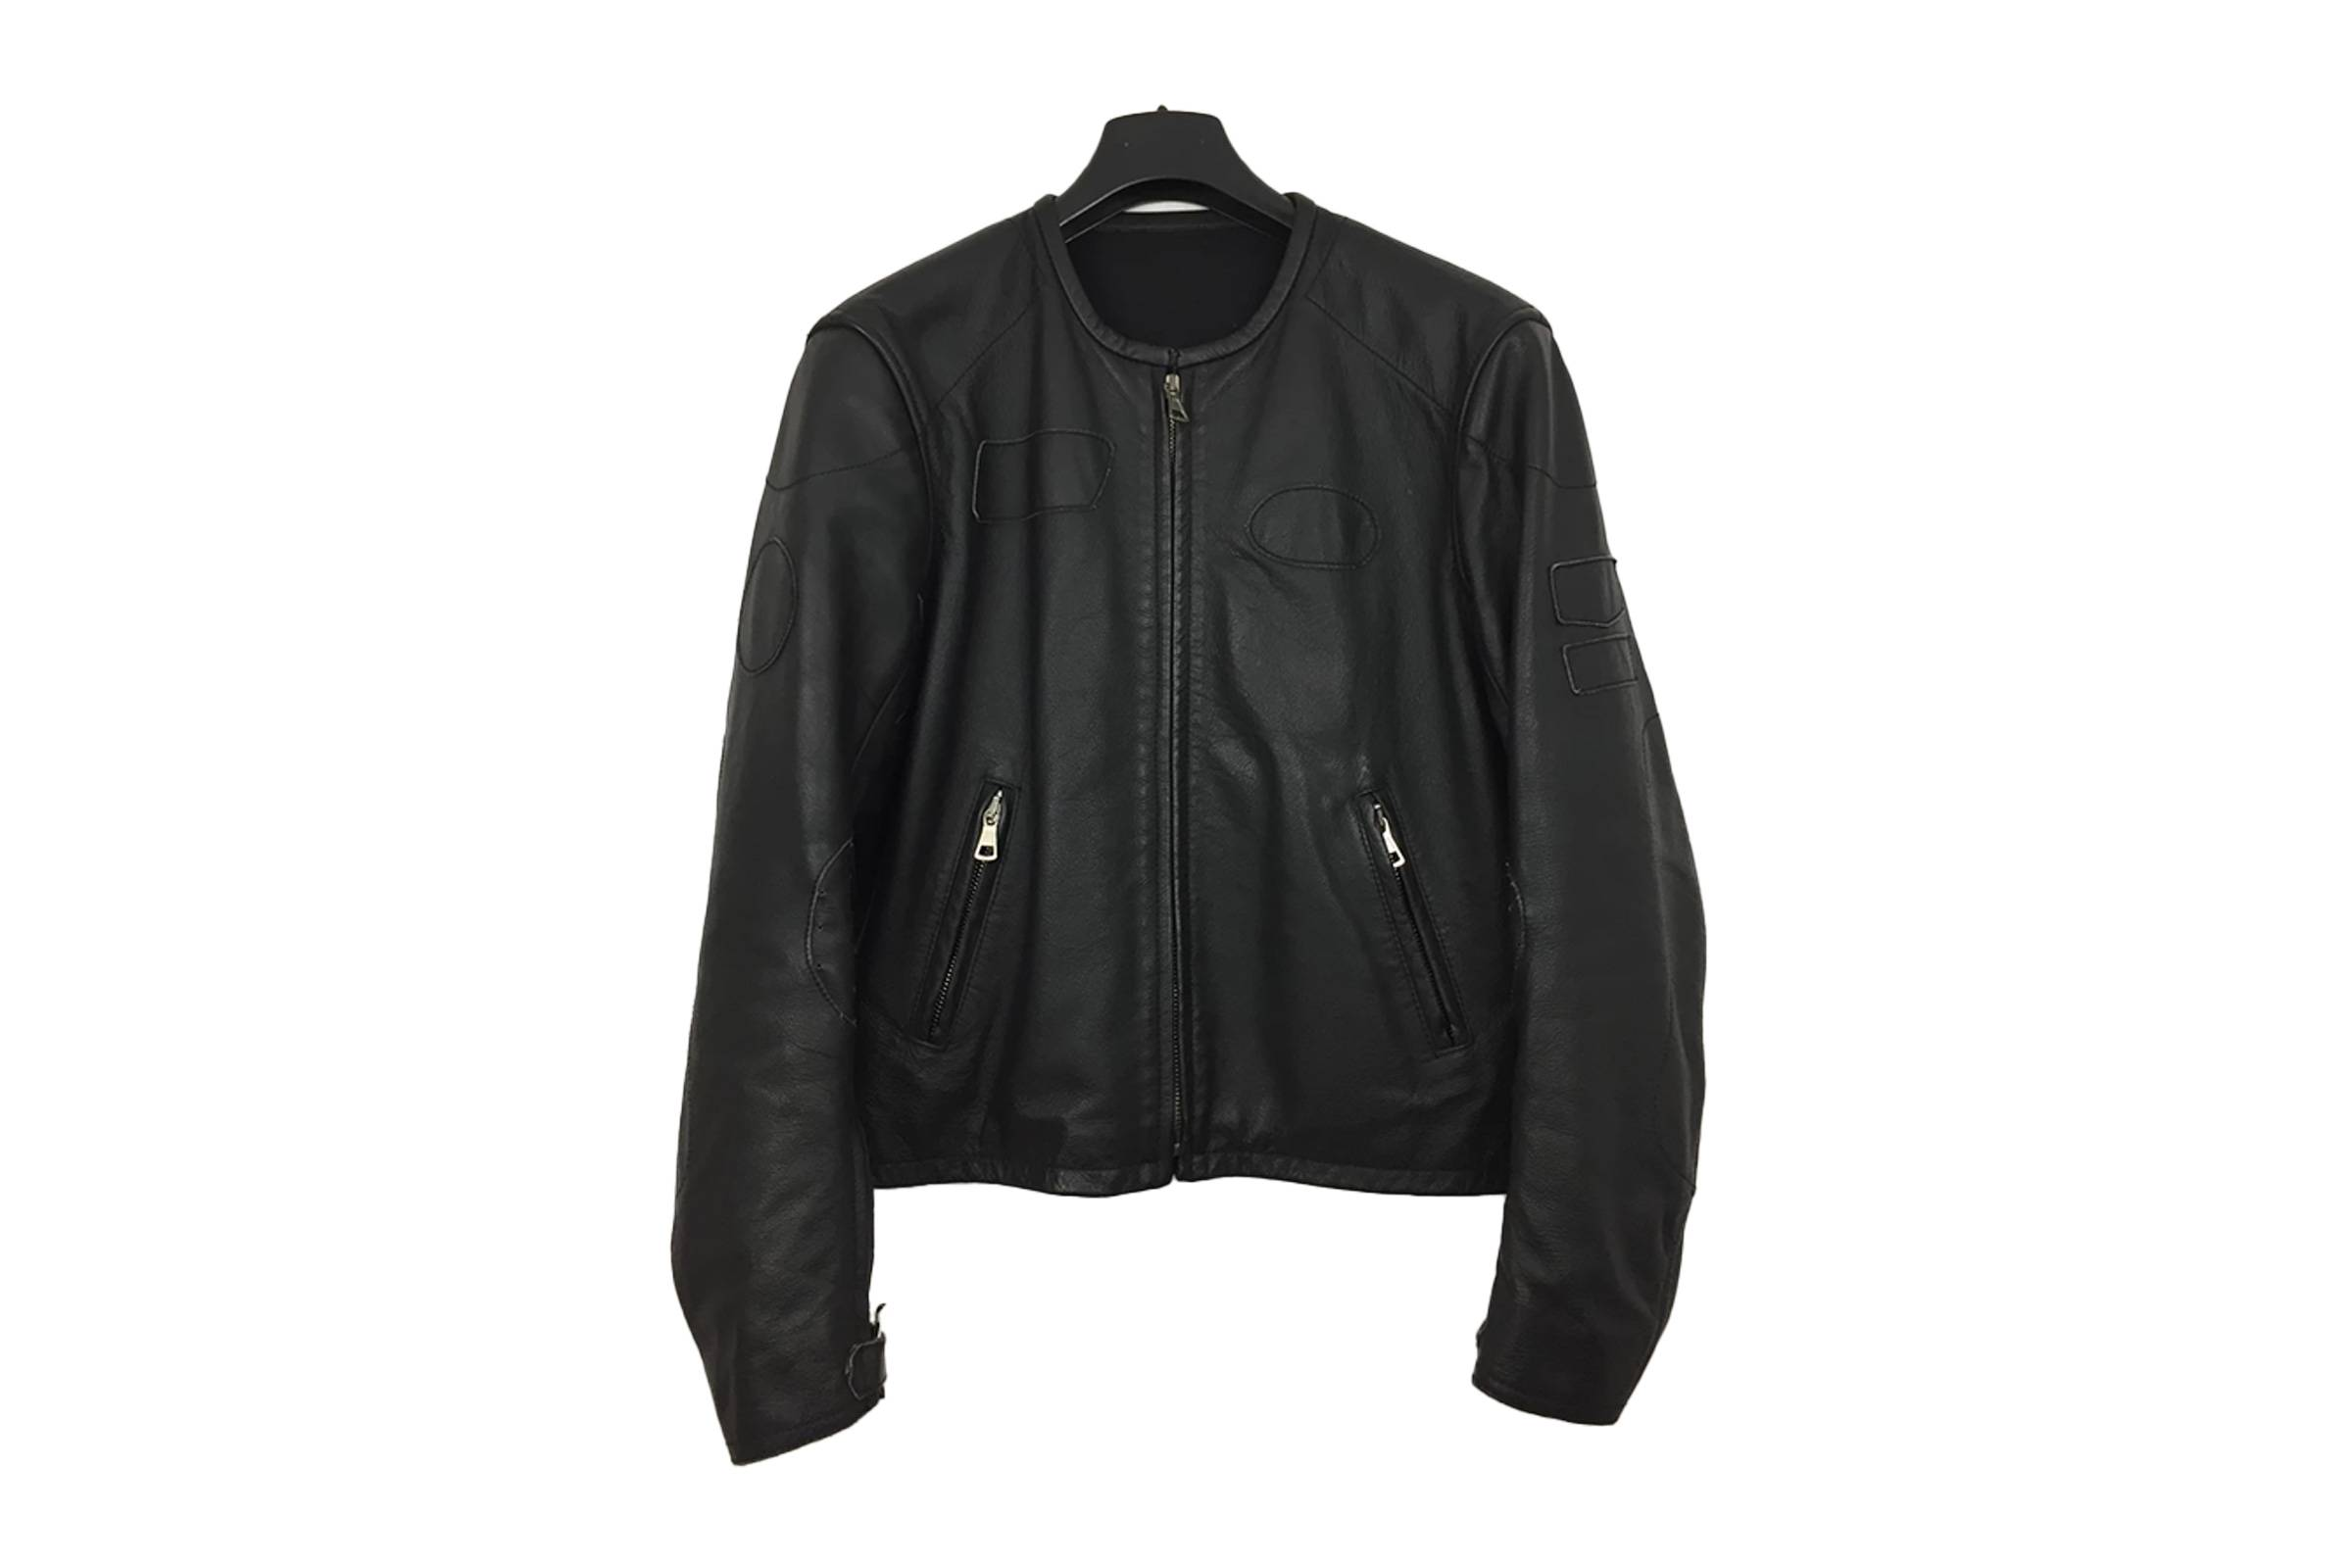 Maison Margiela Spring/Summer 2002 Patched Cafe Racer Jacket